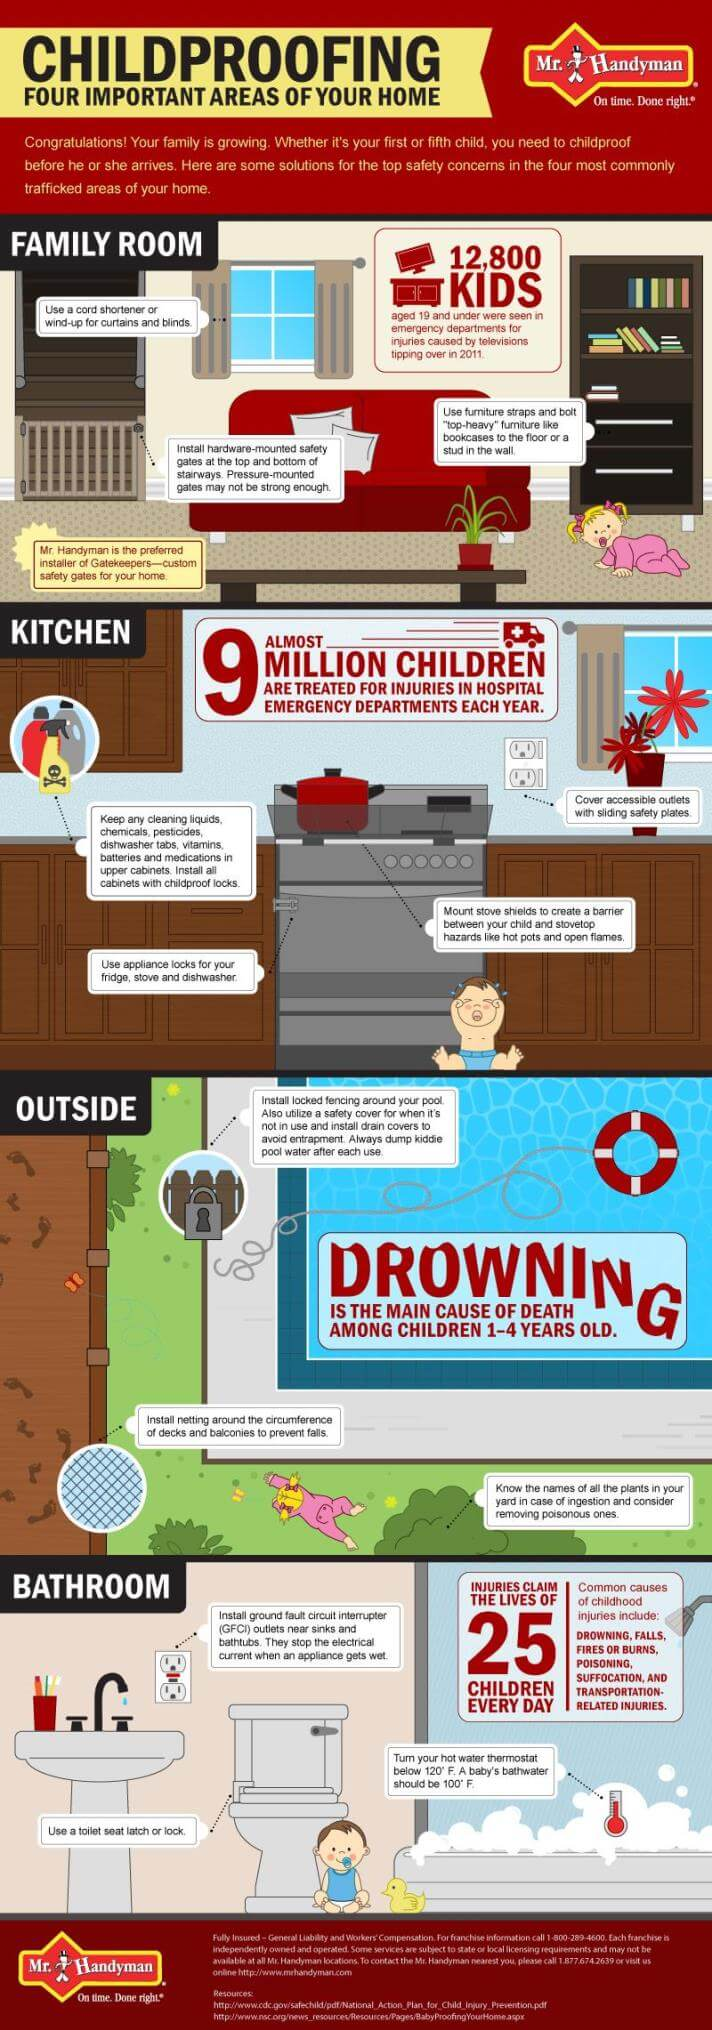 childproofing-101-baby-proofing-your-home-for-safety-tips-tipsographic